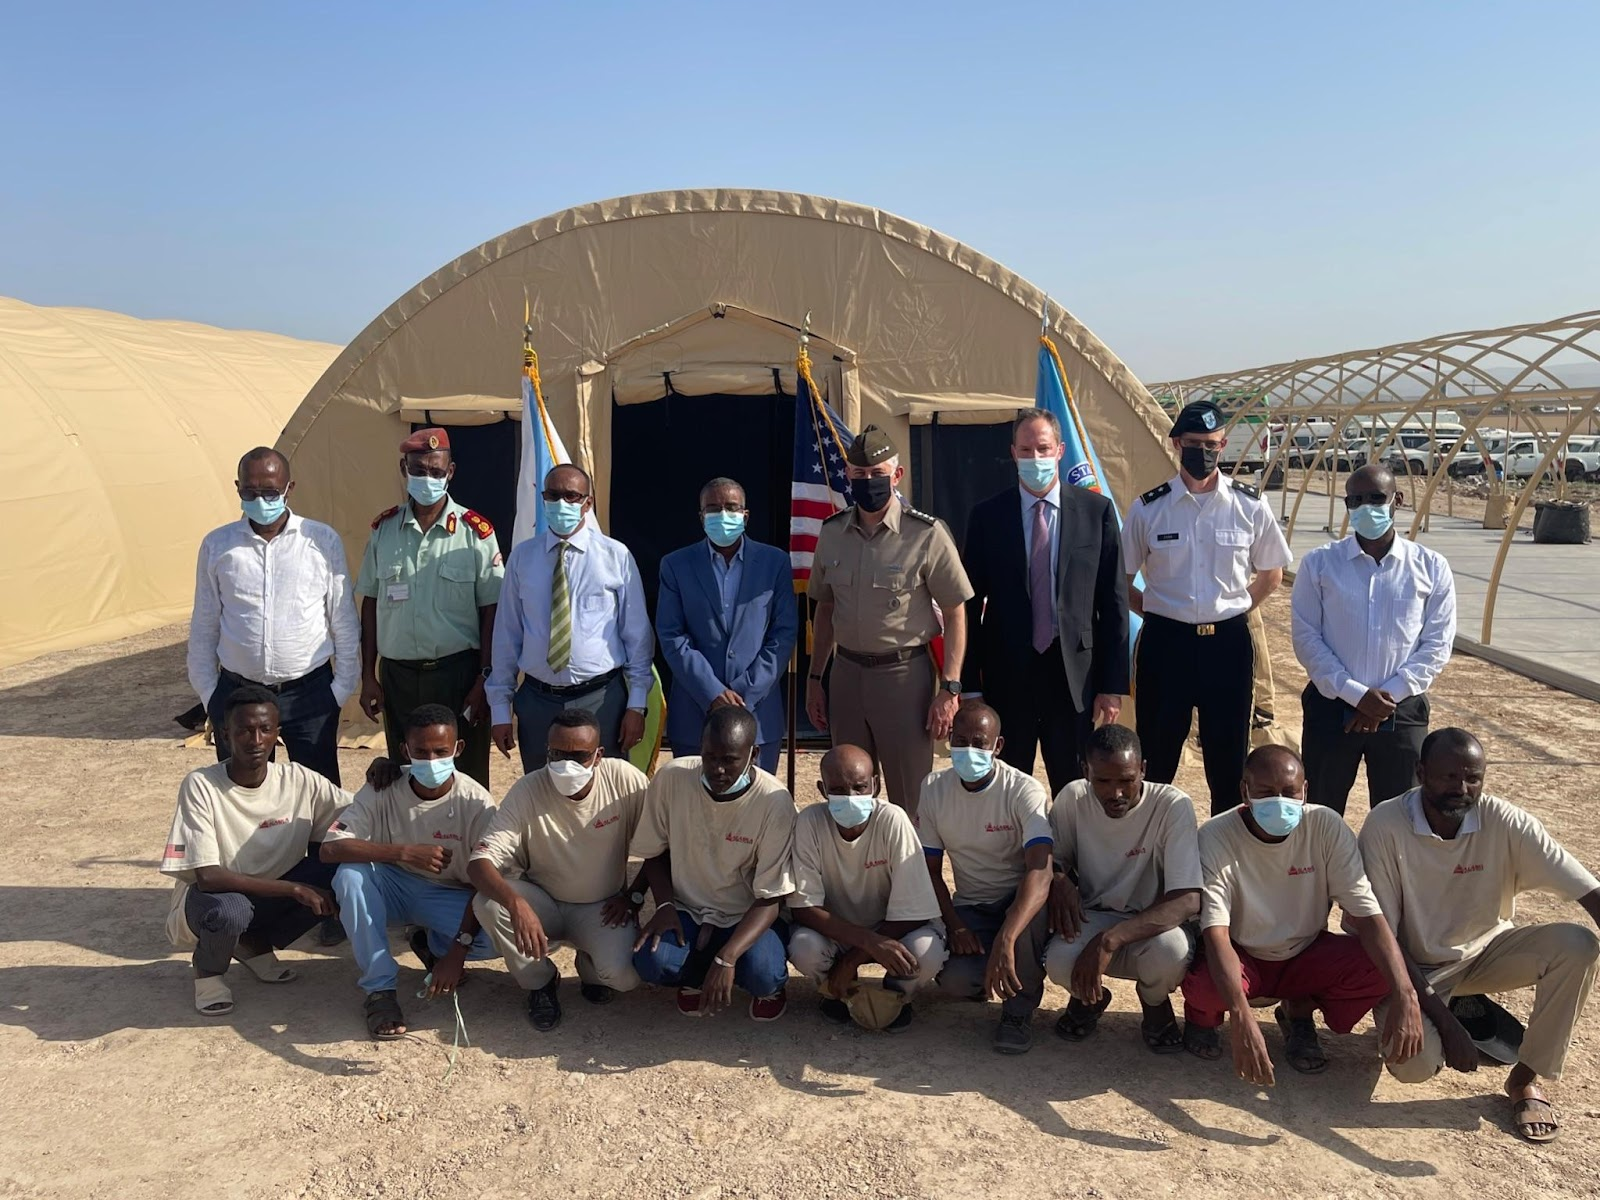 Mobile field hospital from Alaska Structures donated to Djibouti.